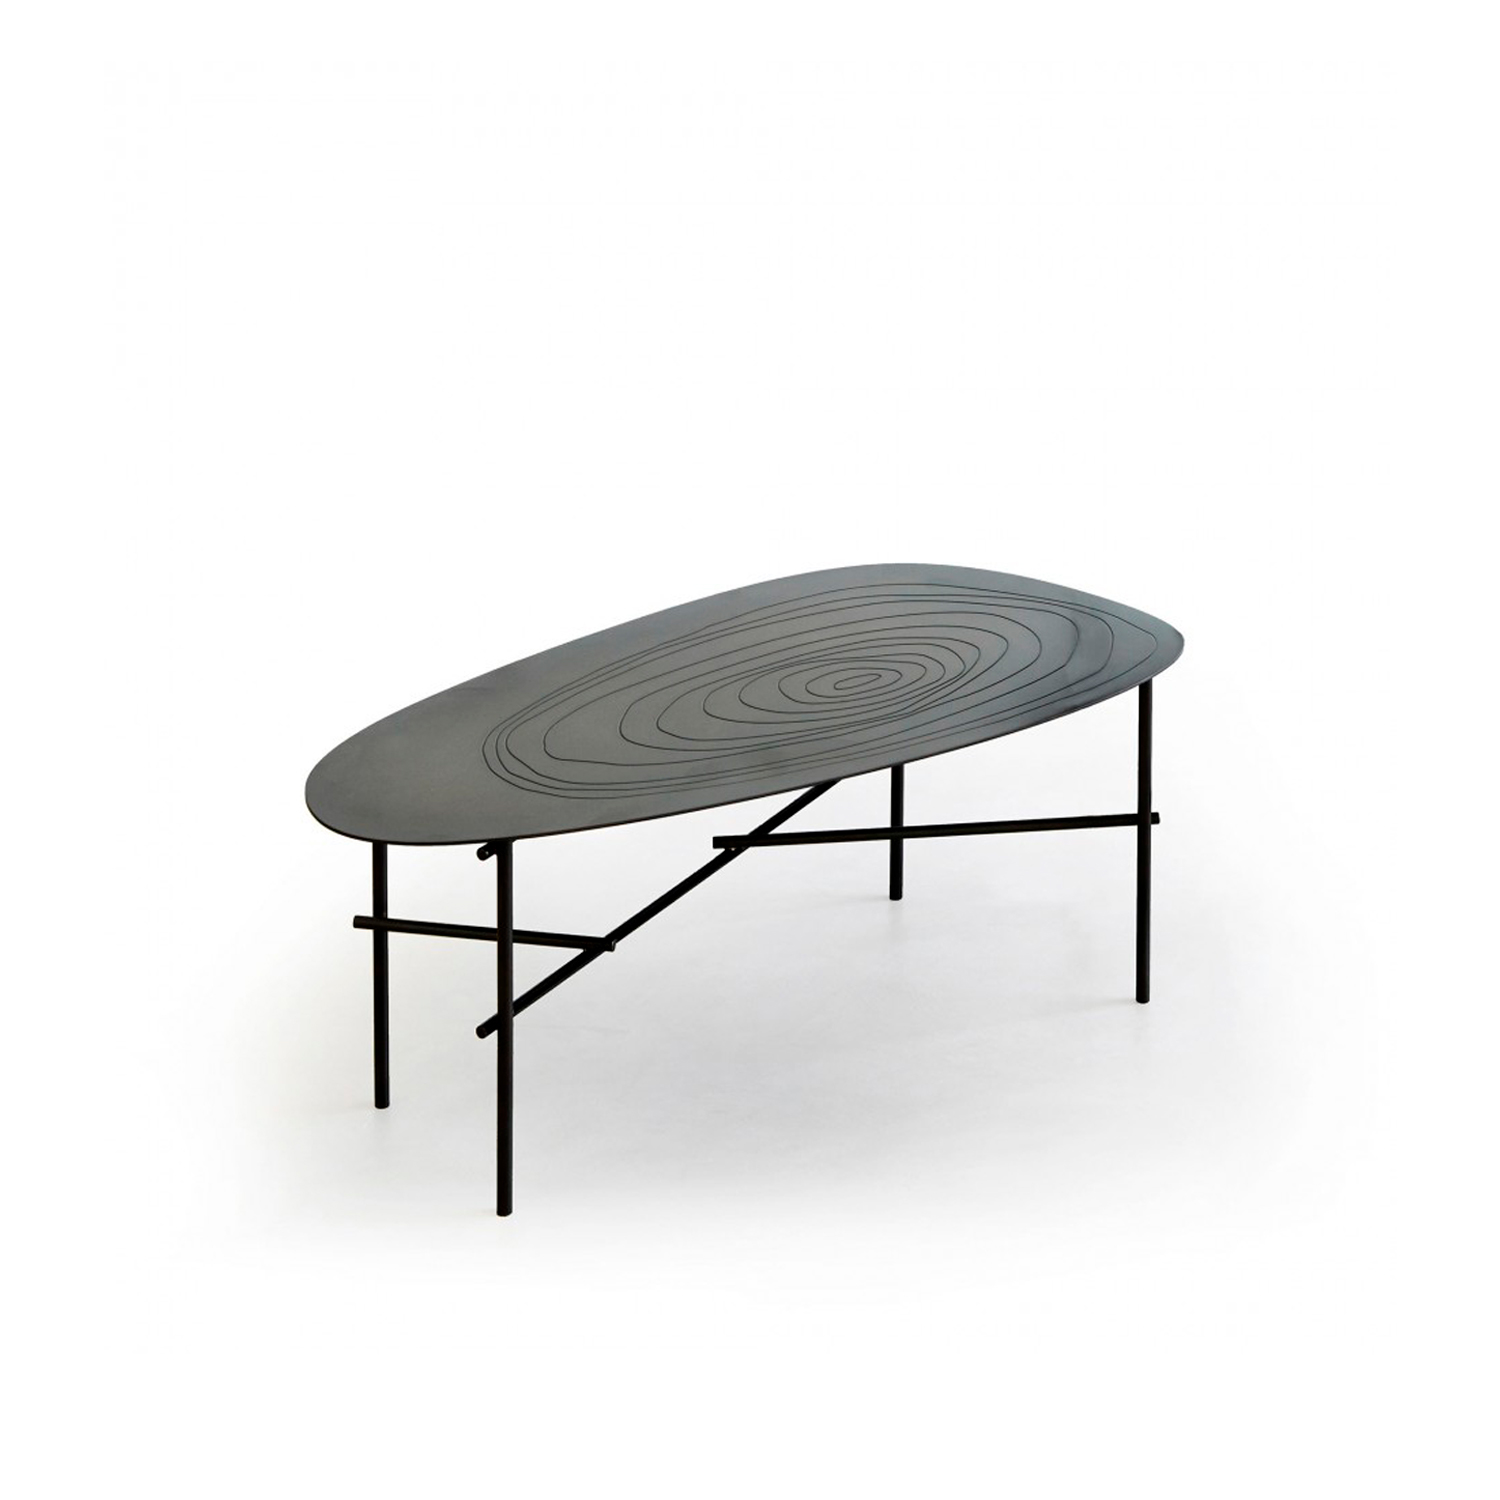 Syro Coffee Table  - In organic shapes, this triptych of small tables is supported by a slender rebar structure and characterized by geometric shapes etched on the sheet metal tops. Flowing forms, almost primitive markings, material combinations and chromatic variations combine: iron, brass and copper are mixed repeatedly with shapes inspired by circles that branch out into the water, into the flowing current and the rippling waves. The connecting bars of the frame, positioned at the same height from the ground, form a natural weave, like branches of the same plant, in a fluid, balanced composition.  Set of three 100% metal side tableswith irregularly-shaped engraved tops.  Legs E5 DeLabré iron B  | Matter of Stuff